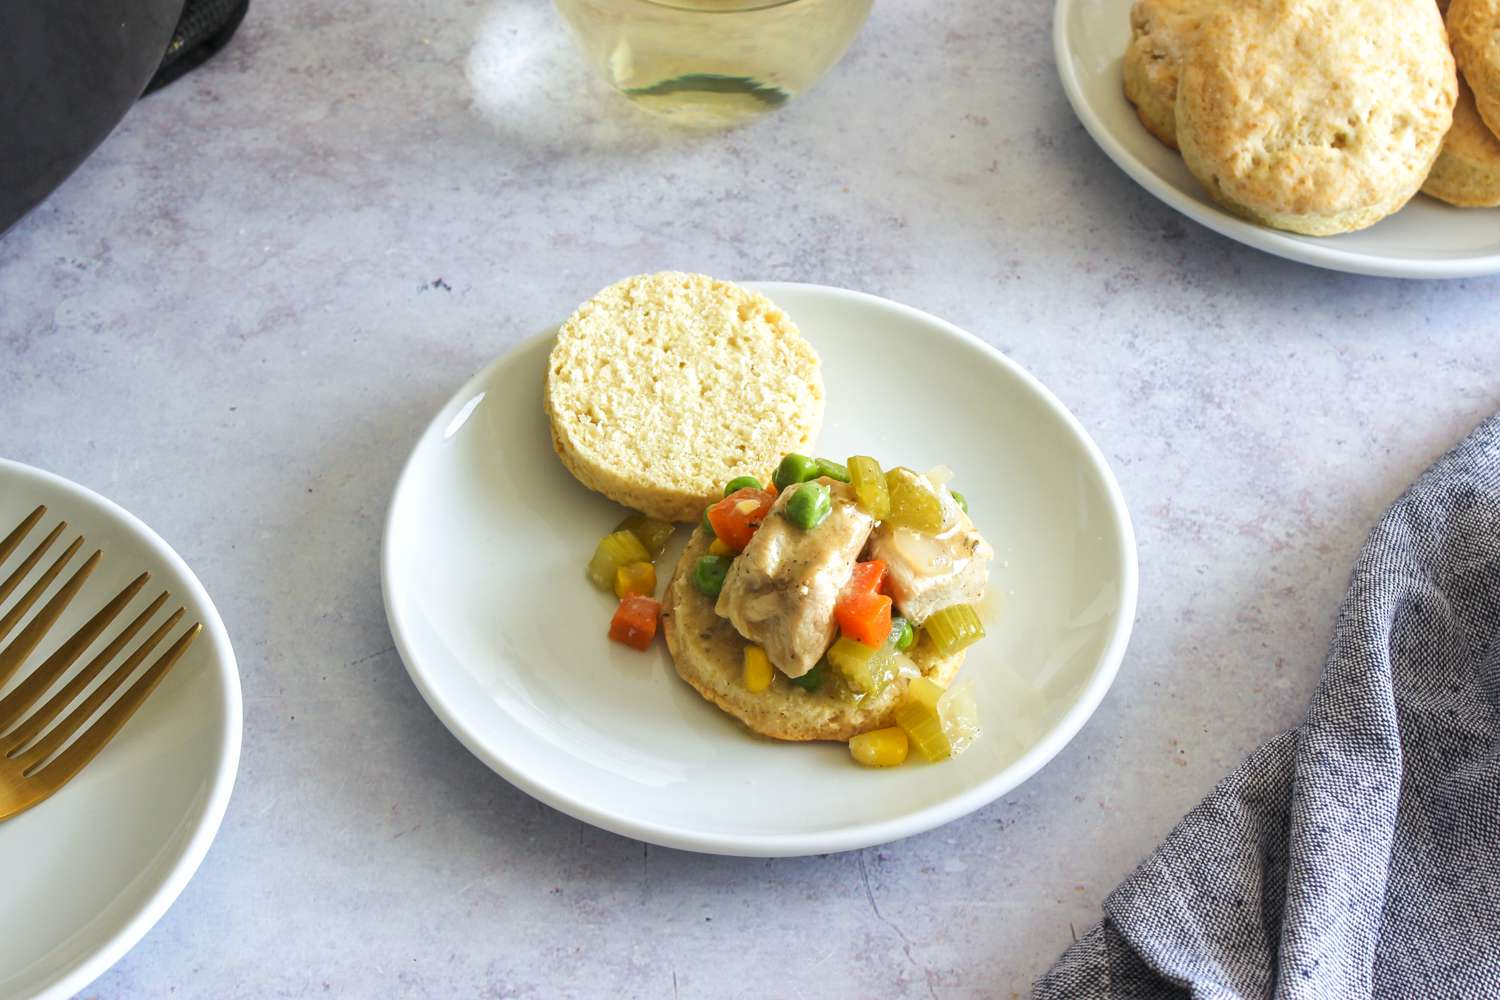 Slowcooker chicken and biscuits